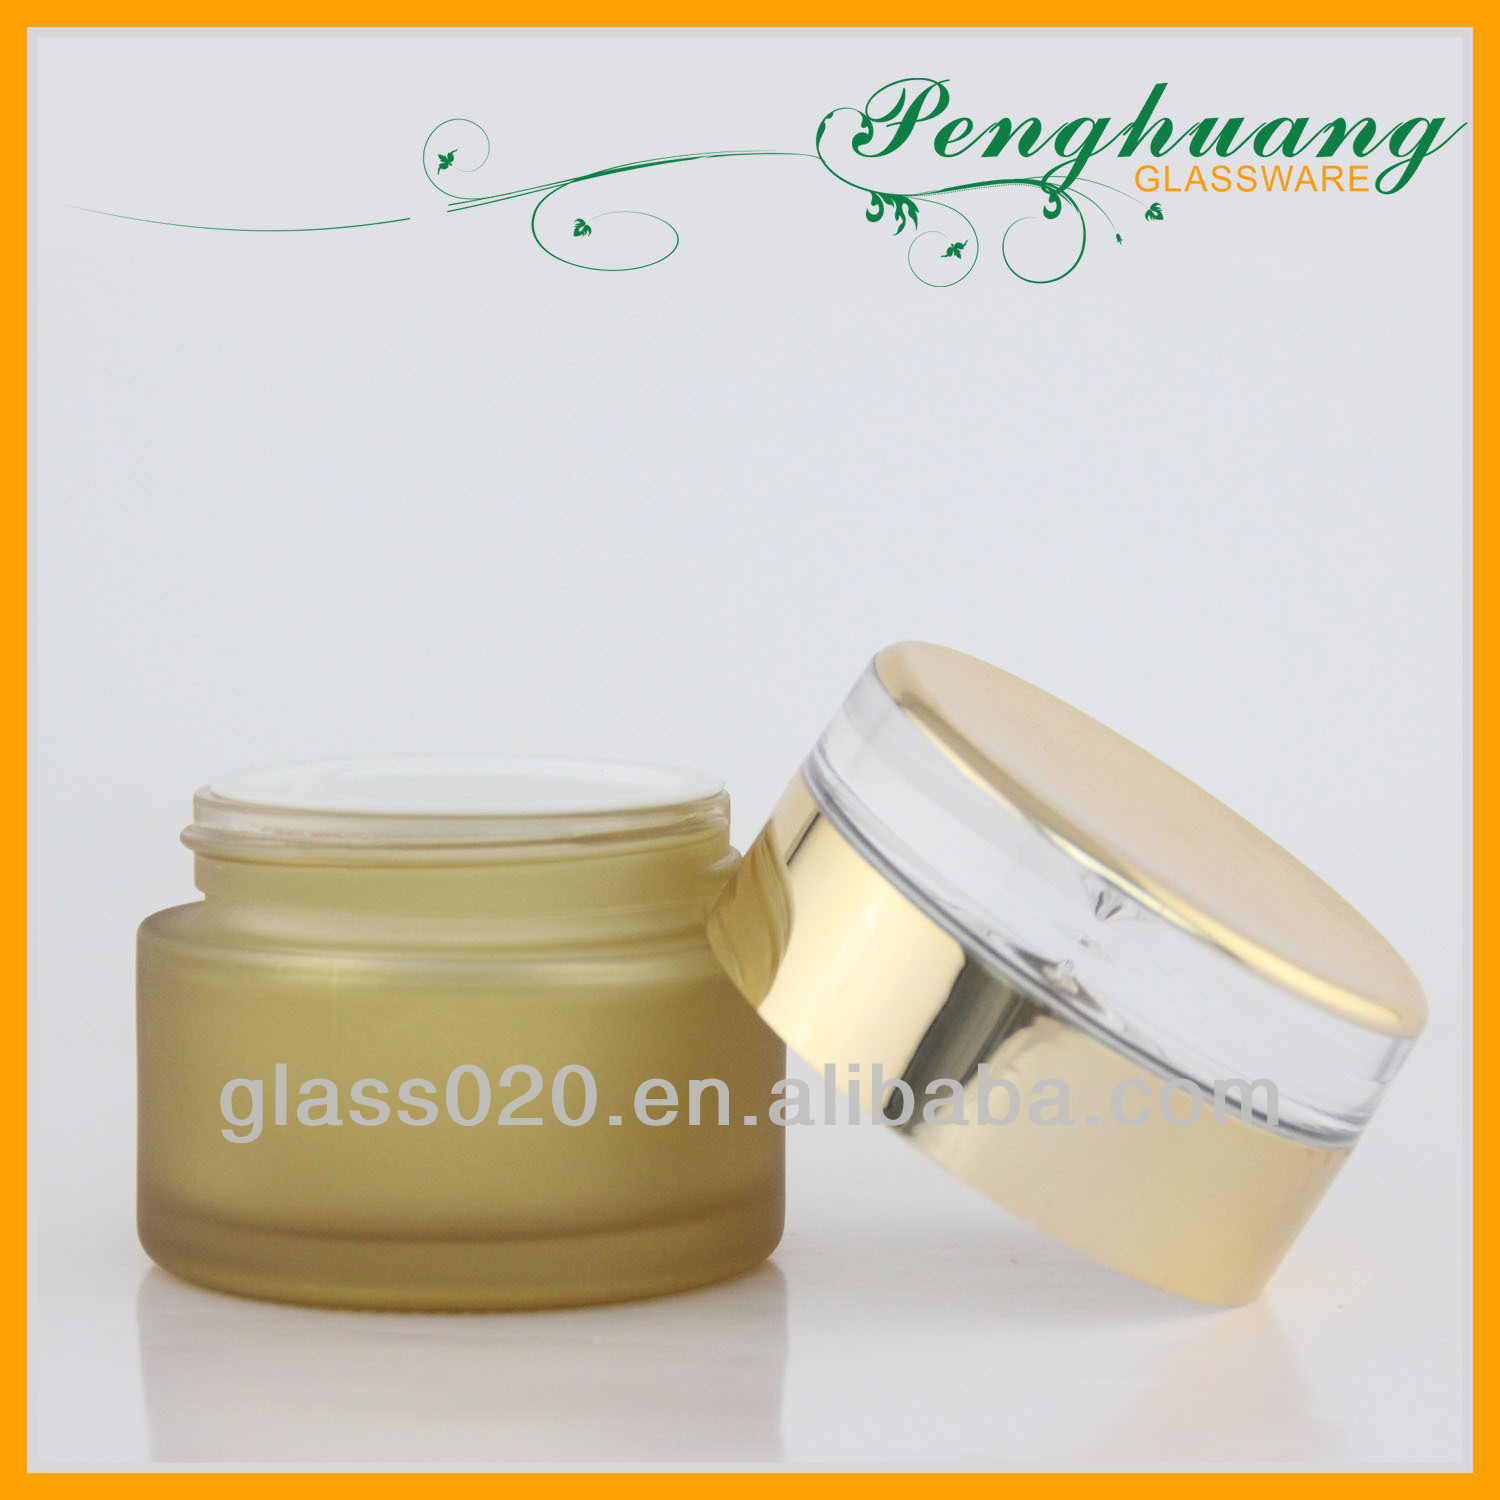 30g gray glass cosmetic cream jar with acrylic cap and hand pand